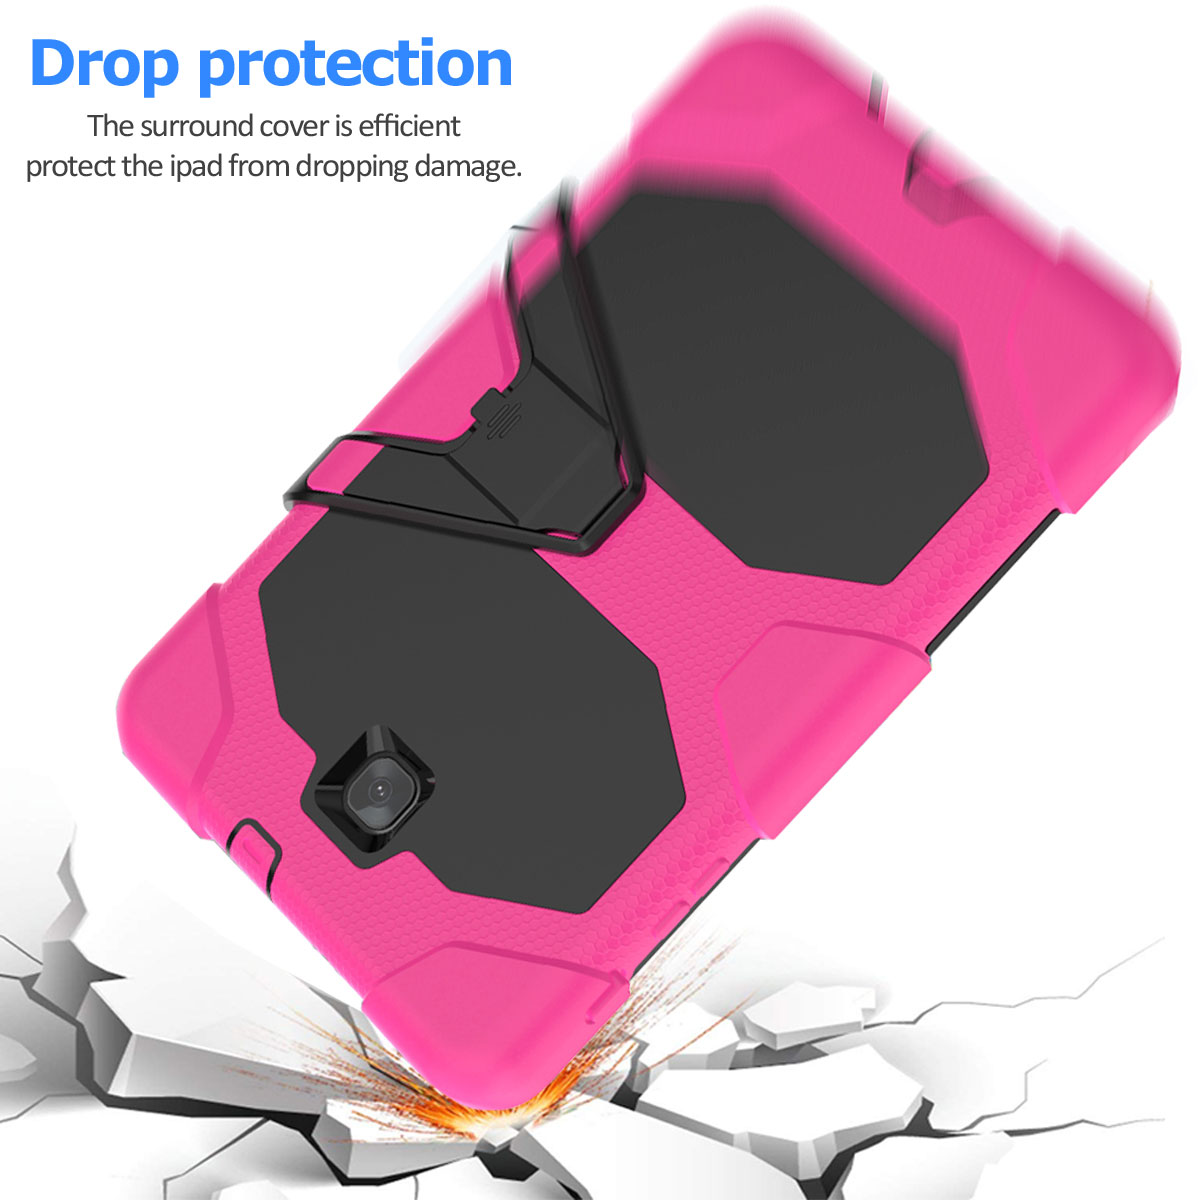 Rugged-Hard-Case-For-Samsung-Galaxy-Tab-A-8-0-2018-SM-T387-with-Screen-Protector thumbnail 19